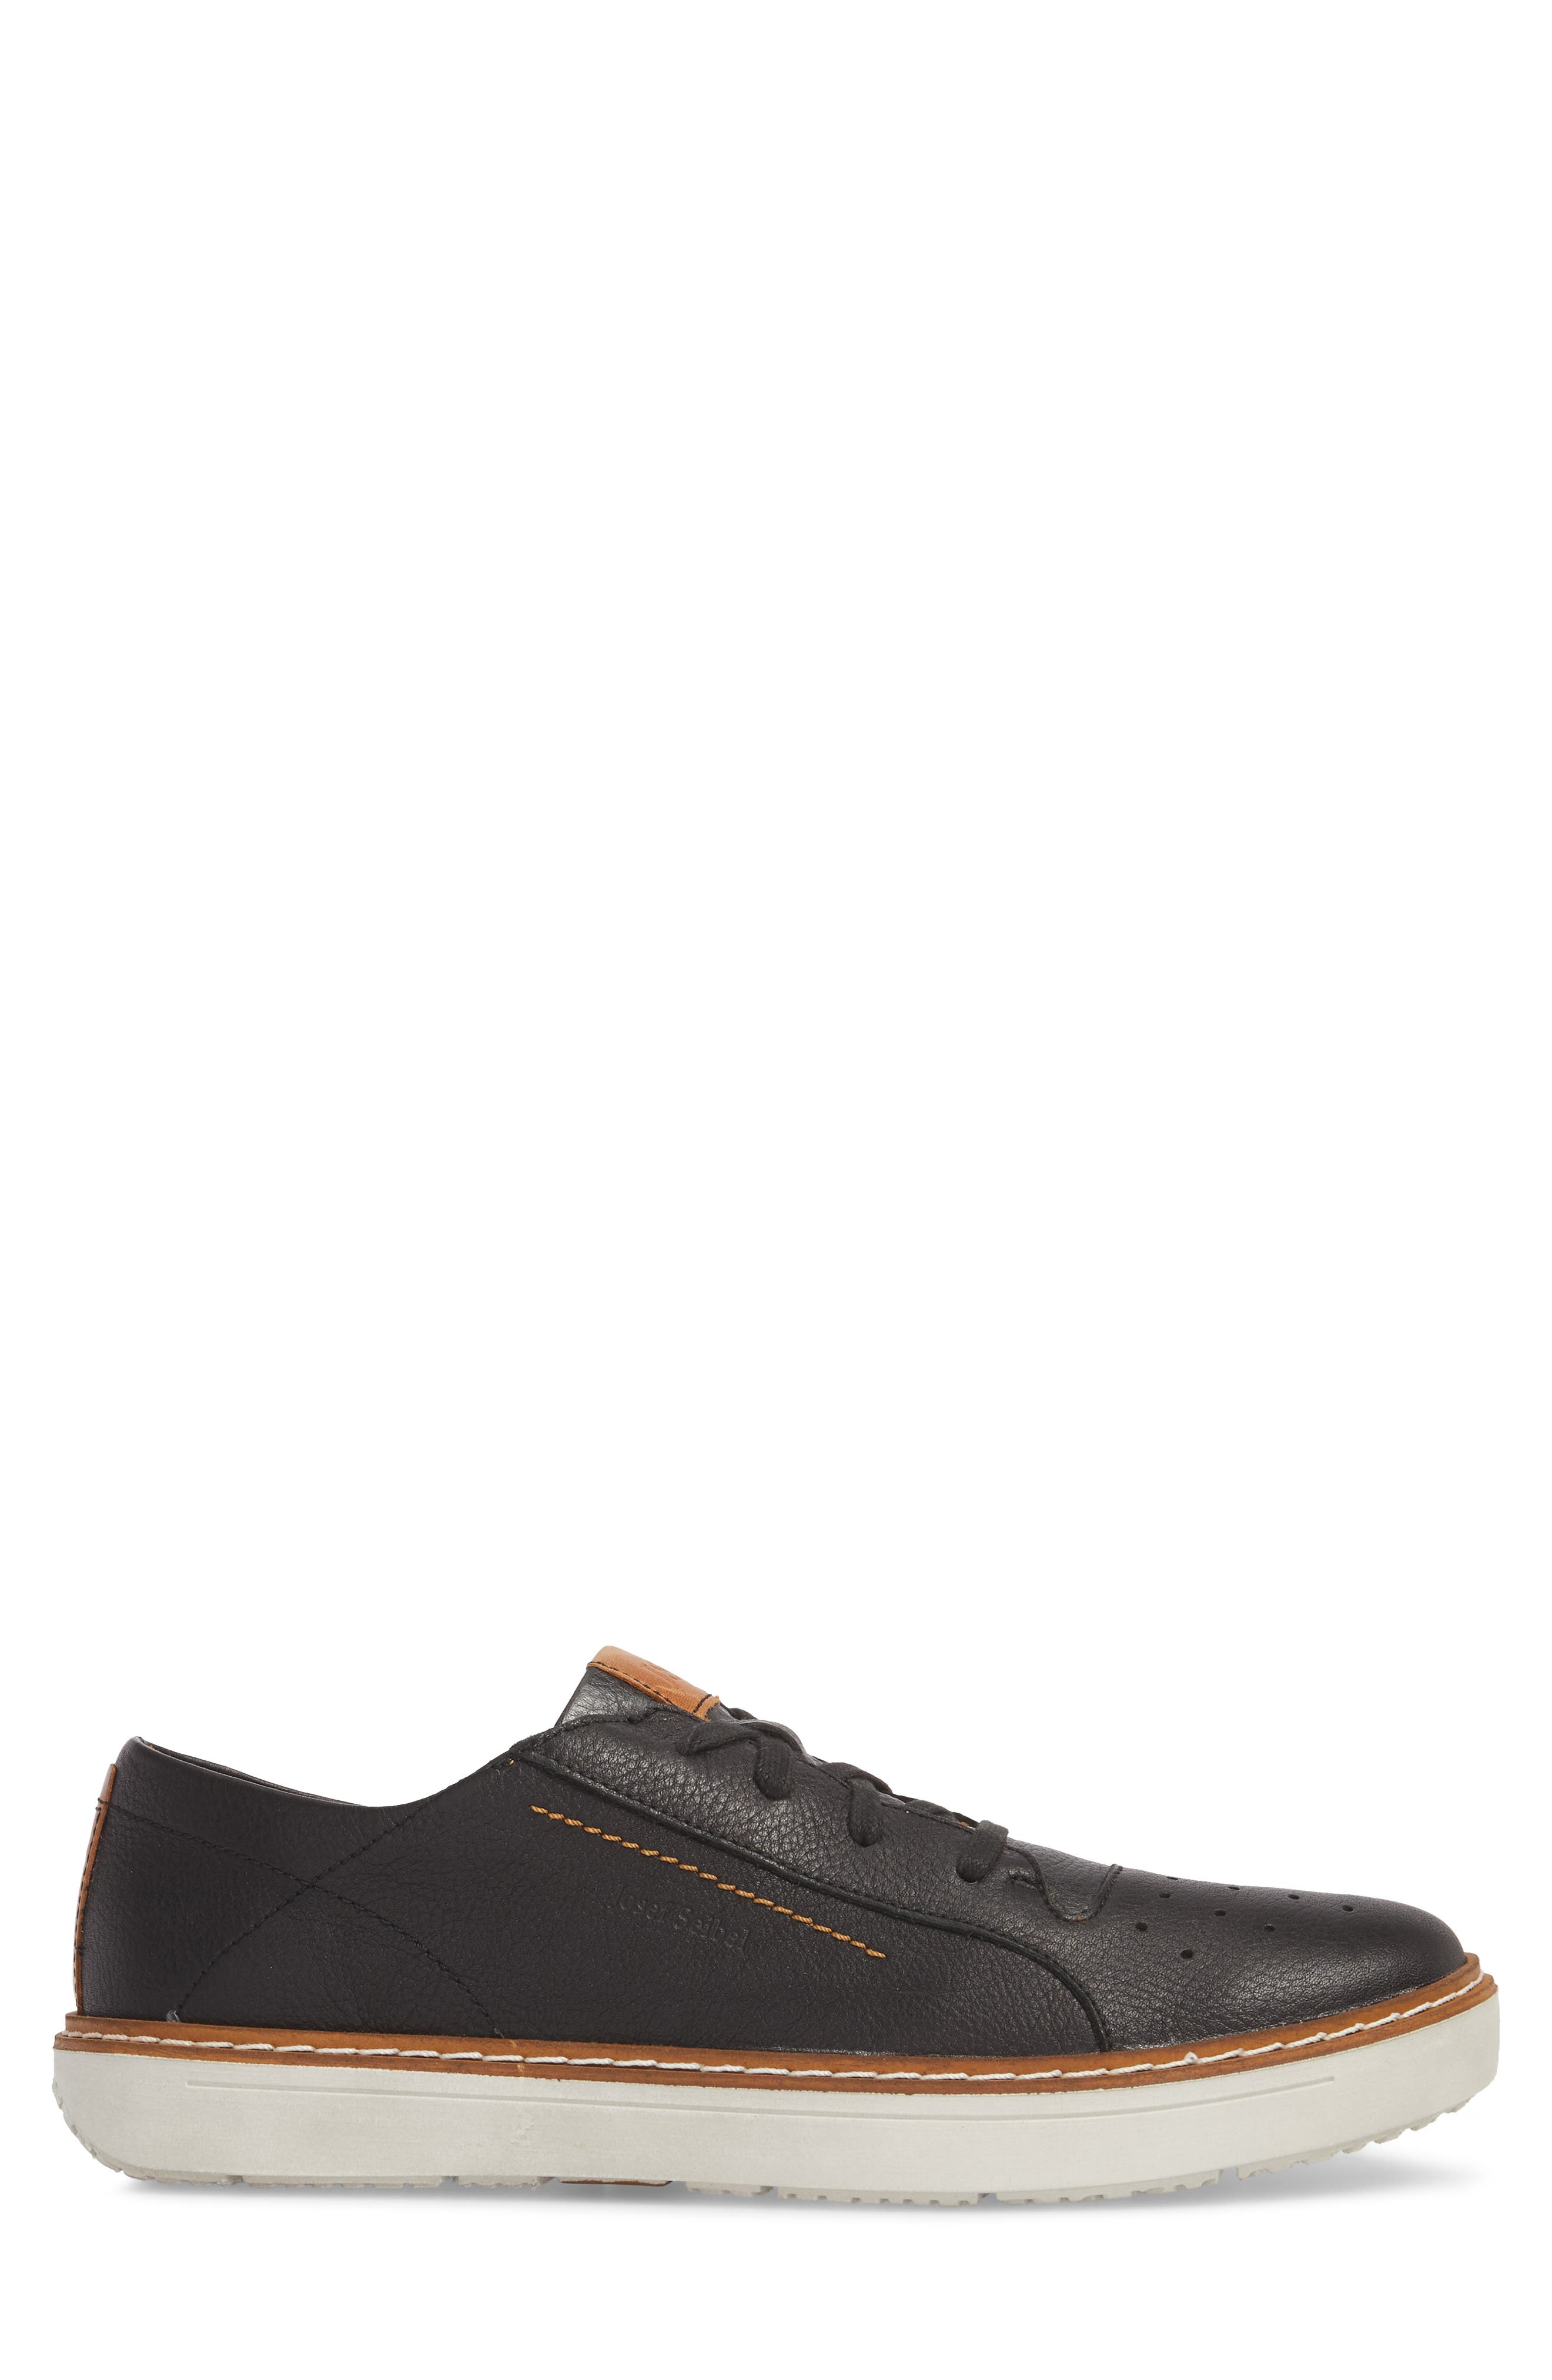 Quentin 03 Low Top Sneaker,                             Alternate thumbnail 3, color,                             BLACK KOMBI LEATHER